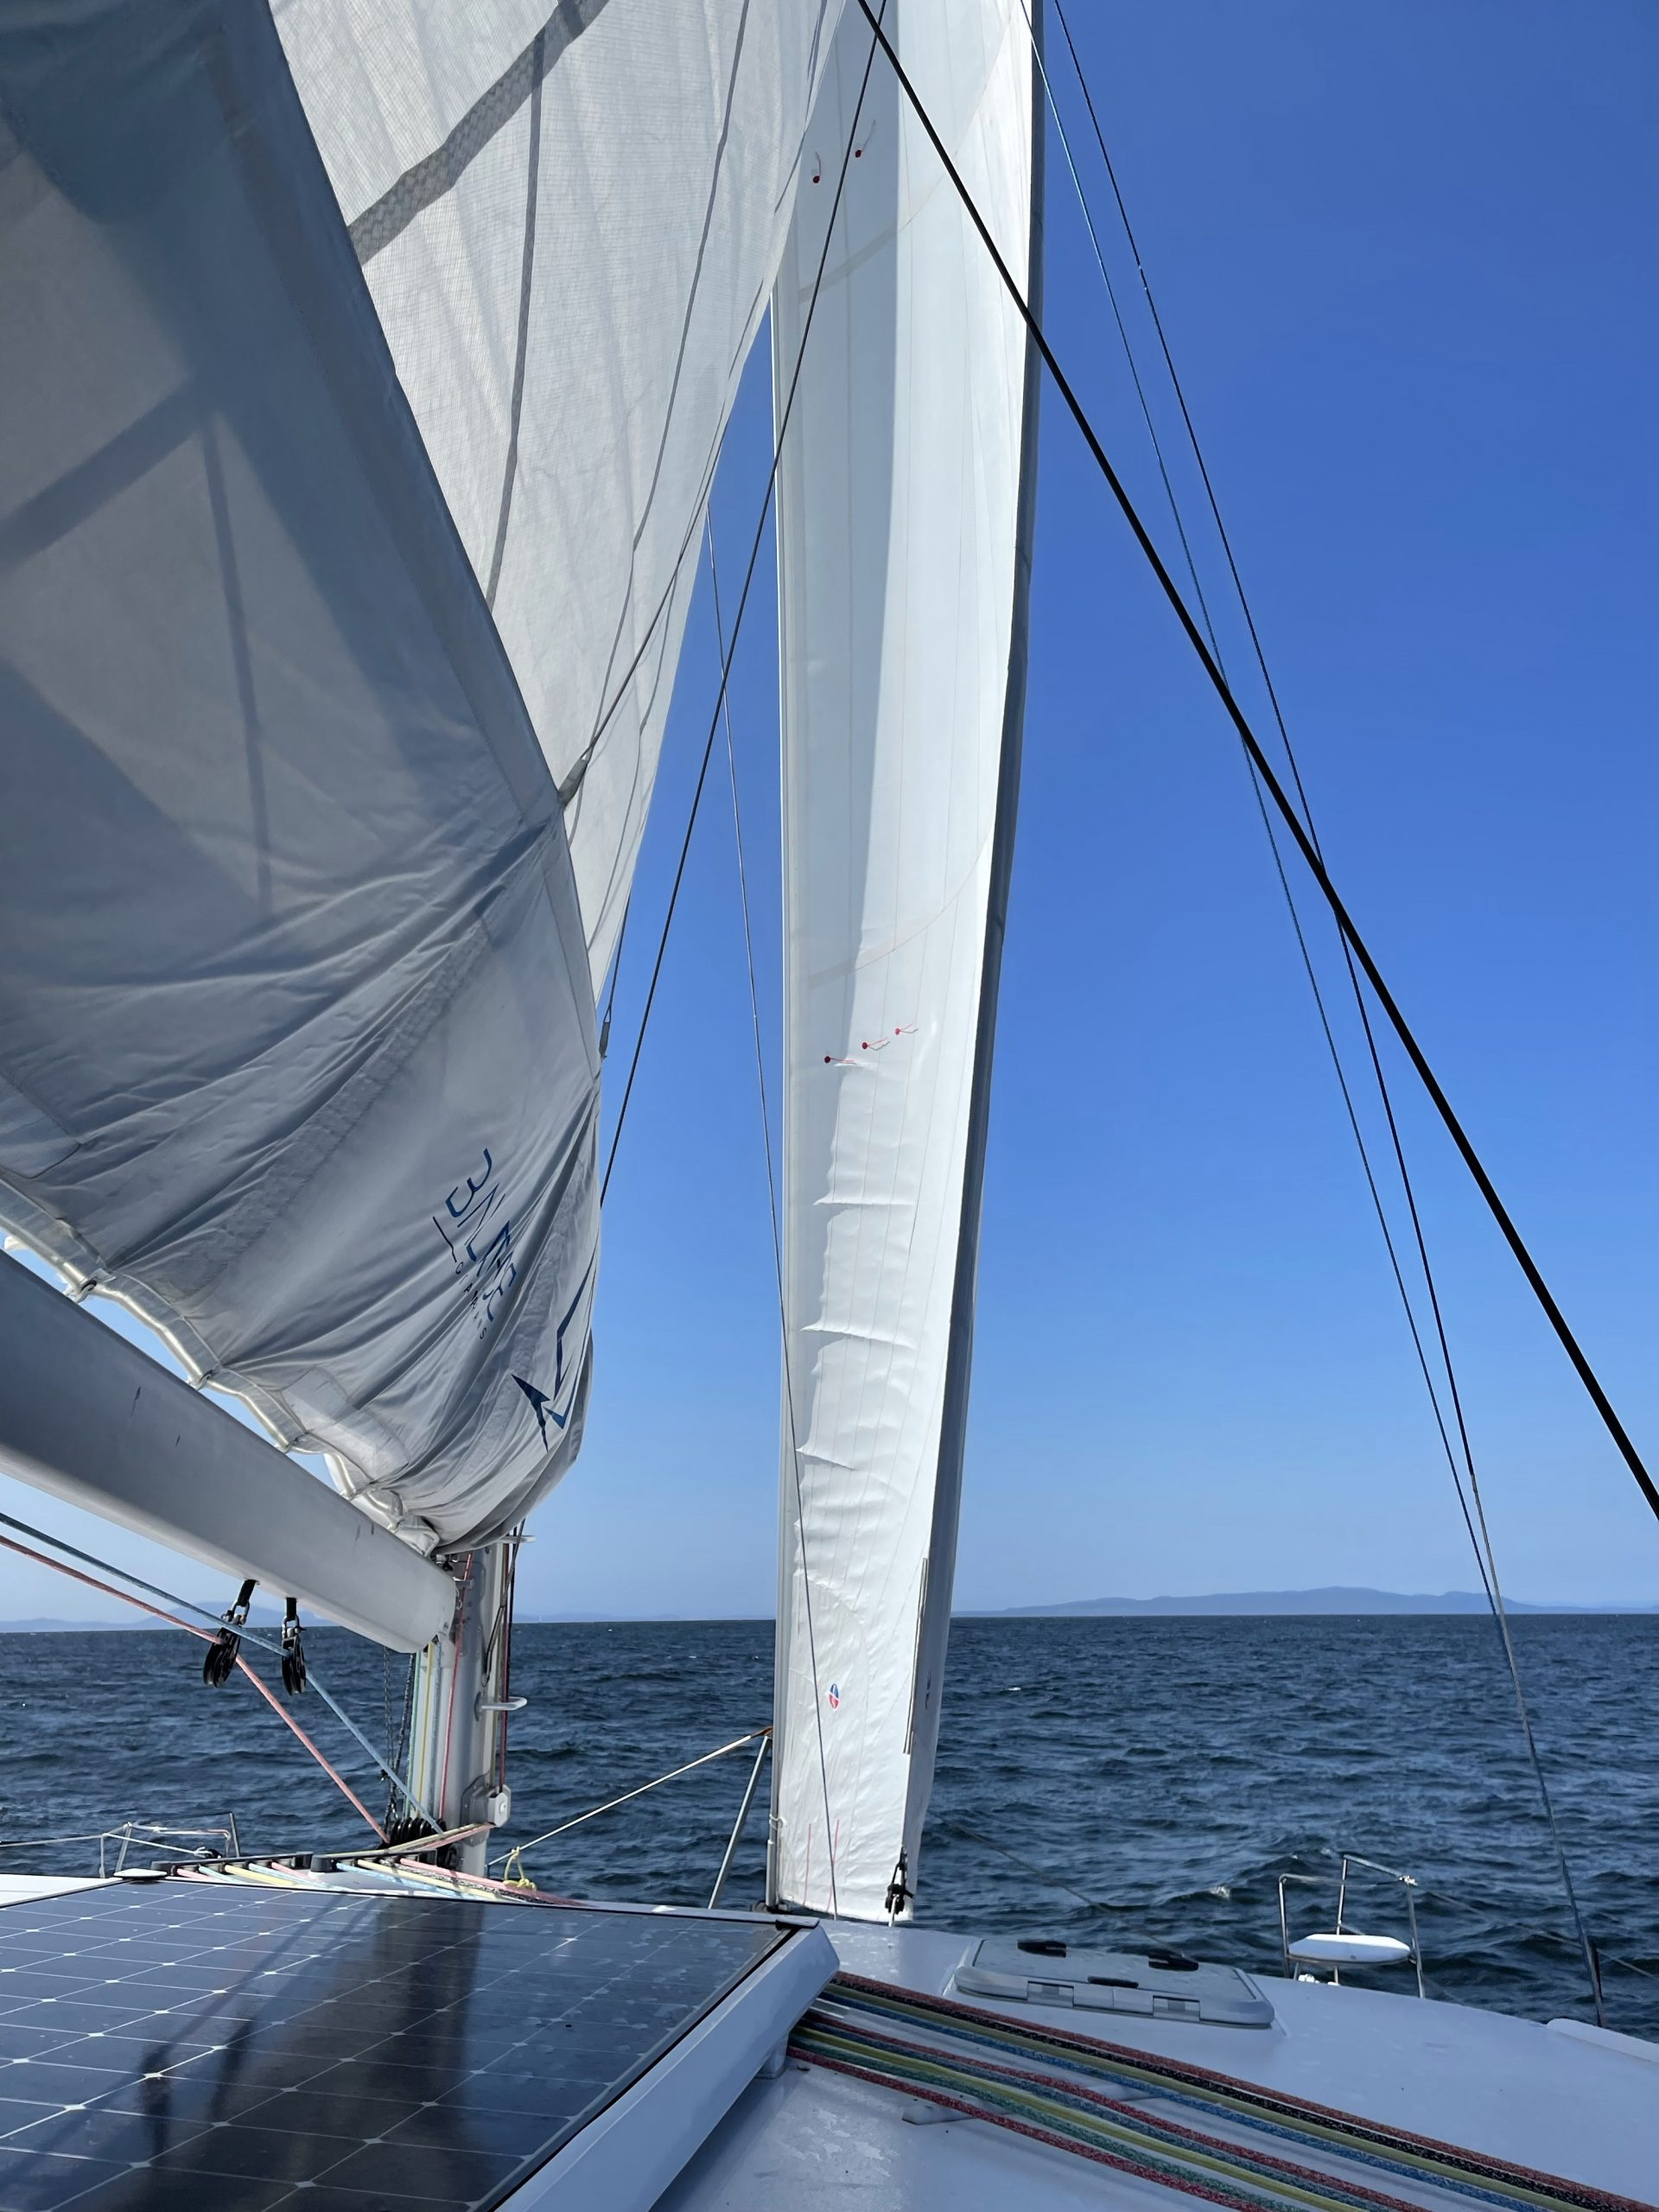 And we're under sail